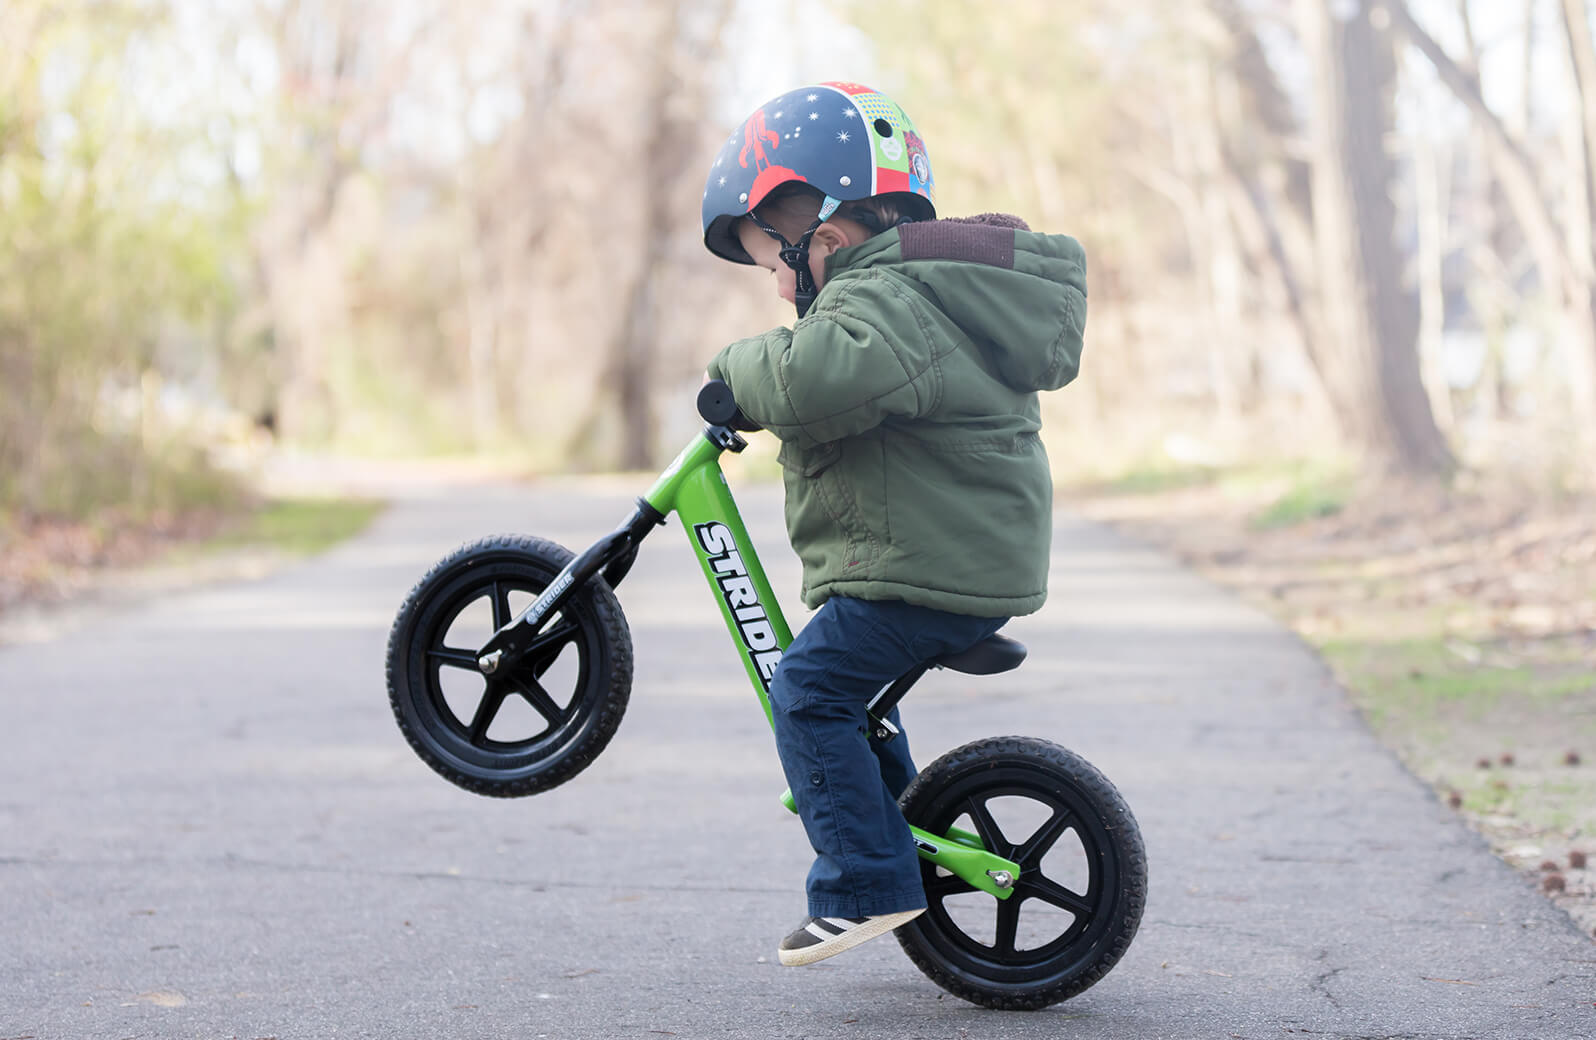 strider balance bikes be awesome